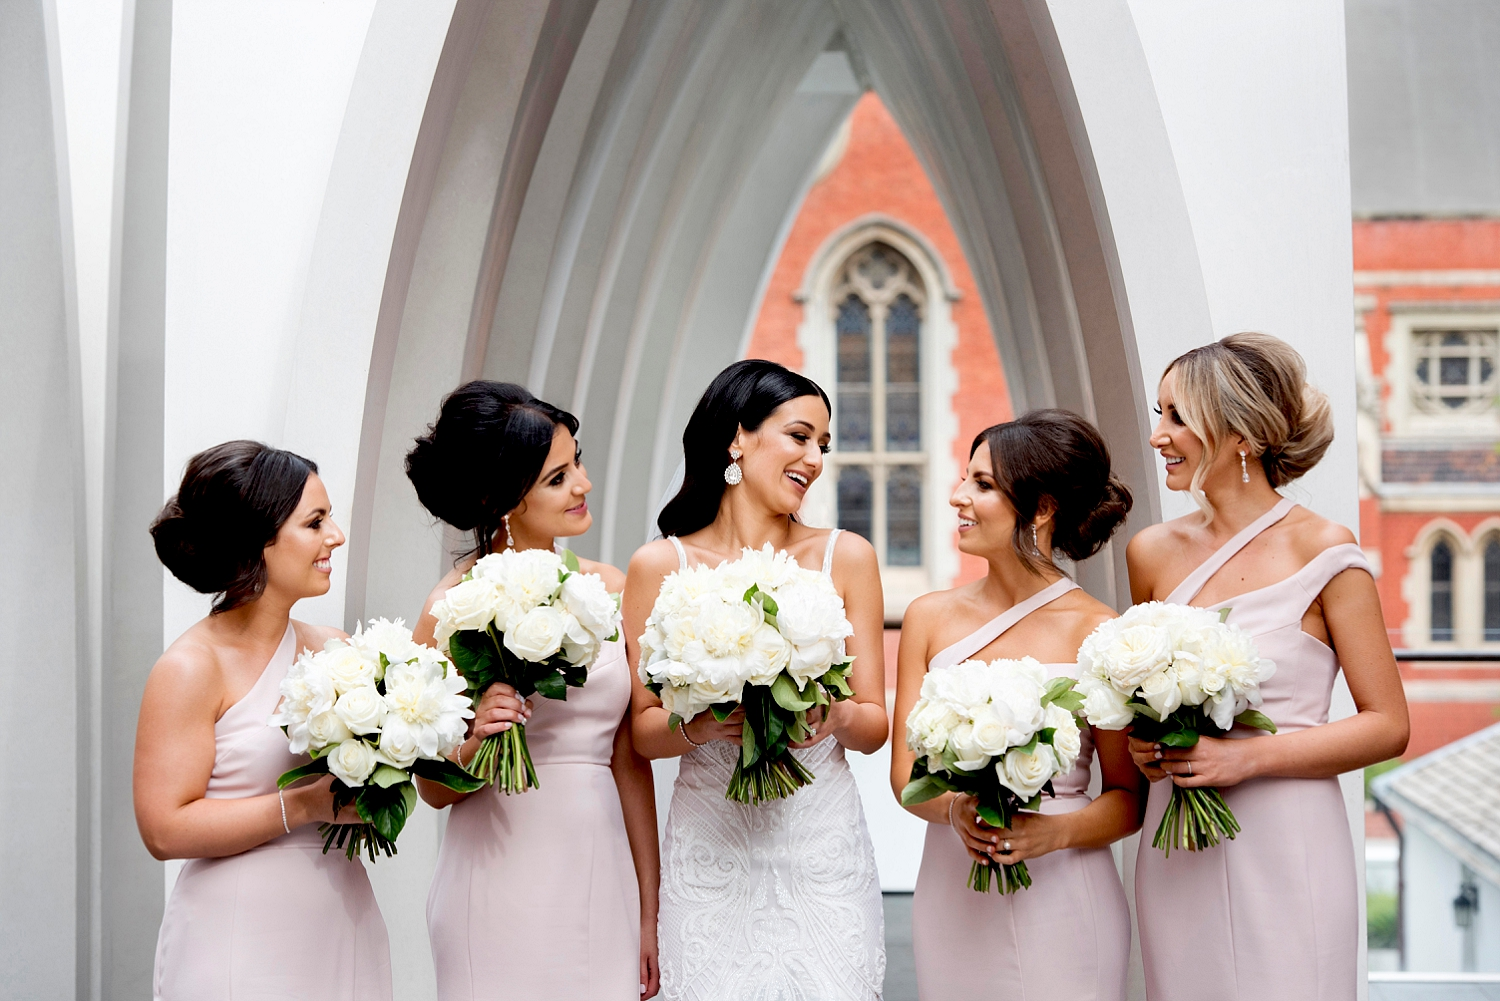 42_st georges cathedral wedding arches perth.jpg